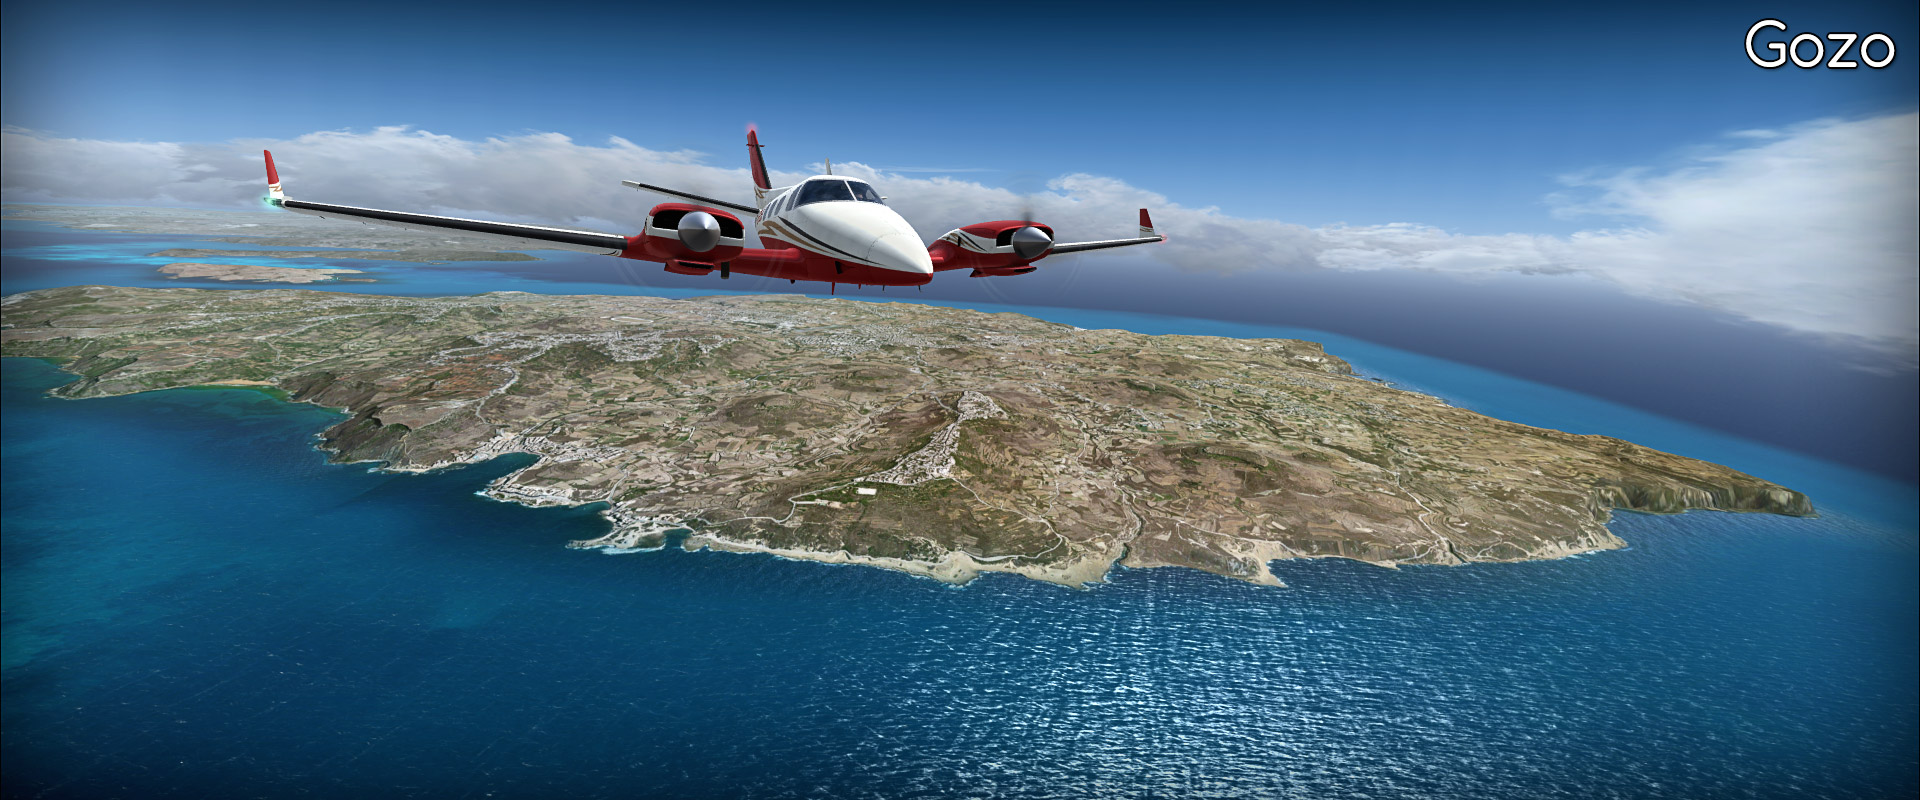 Malta - Palermo, Sicily (LMML-LICJ) • C-Aviation